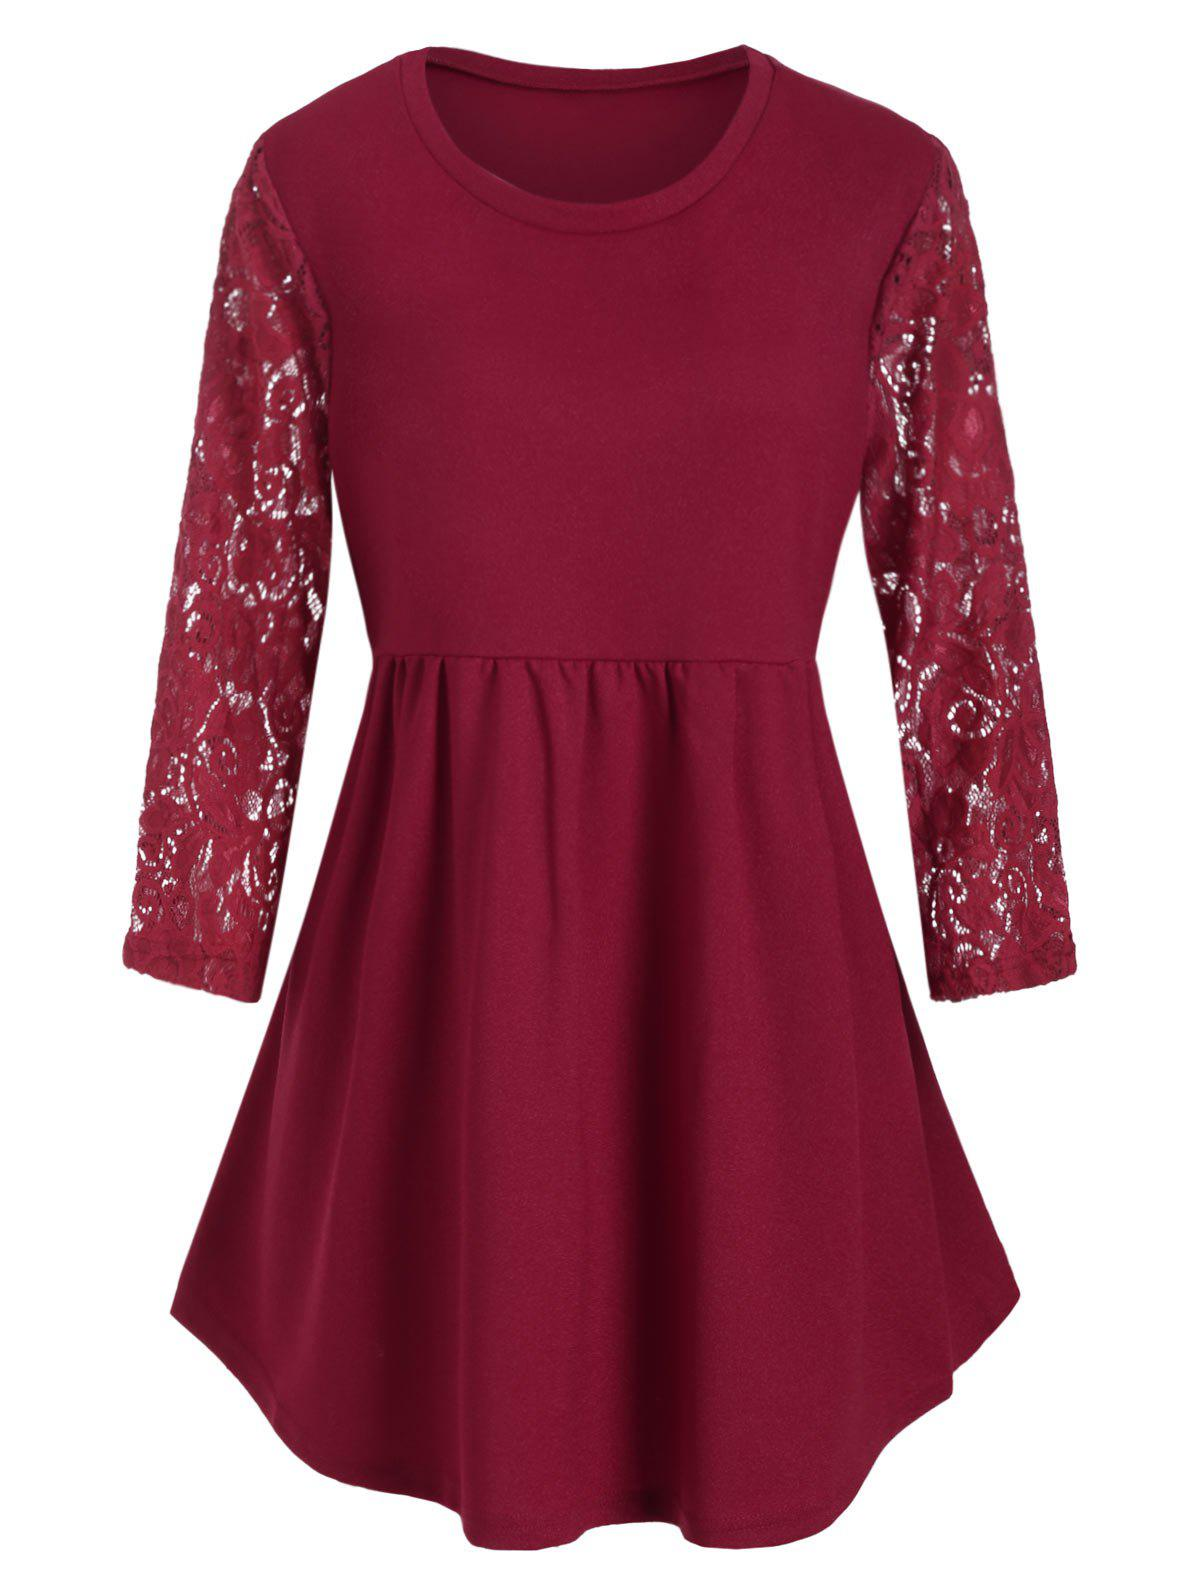 Plus Size Lace Sleeve Longline T-shirt - RED WINE 3X